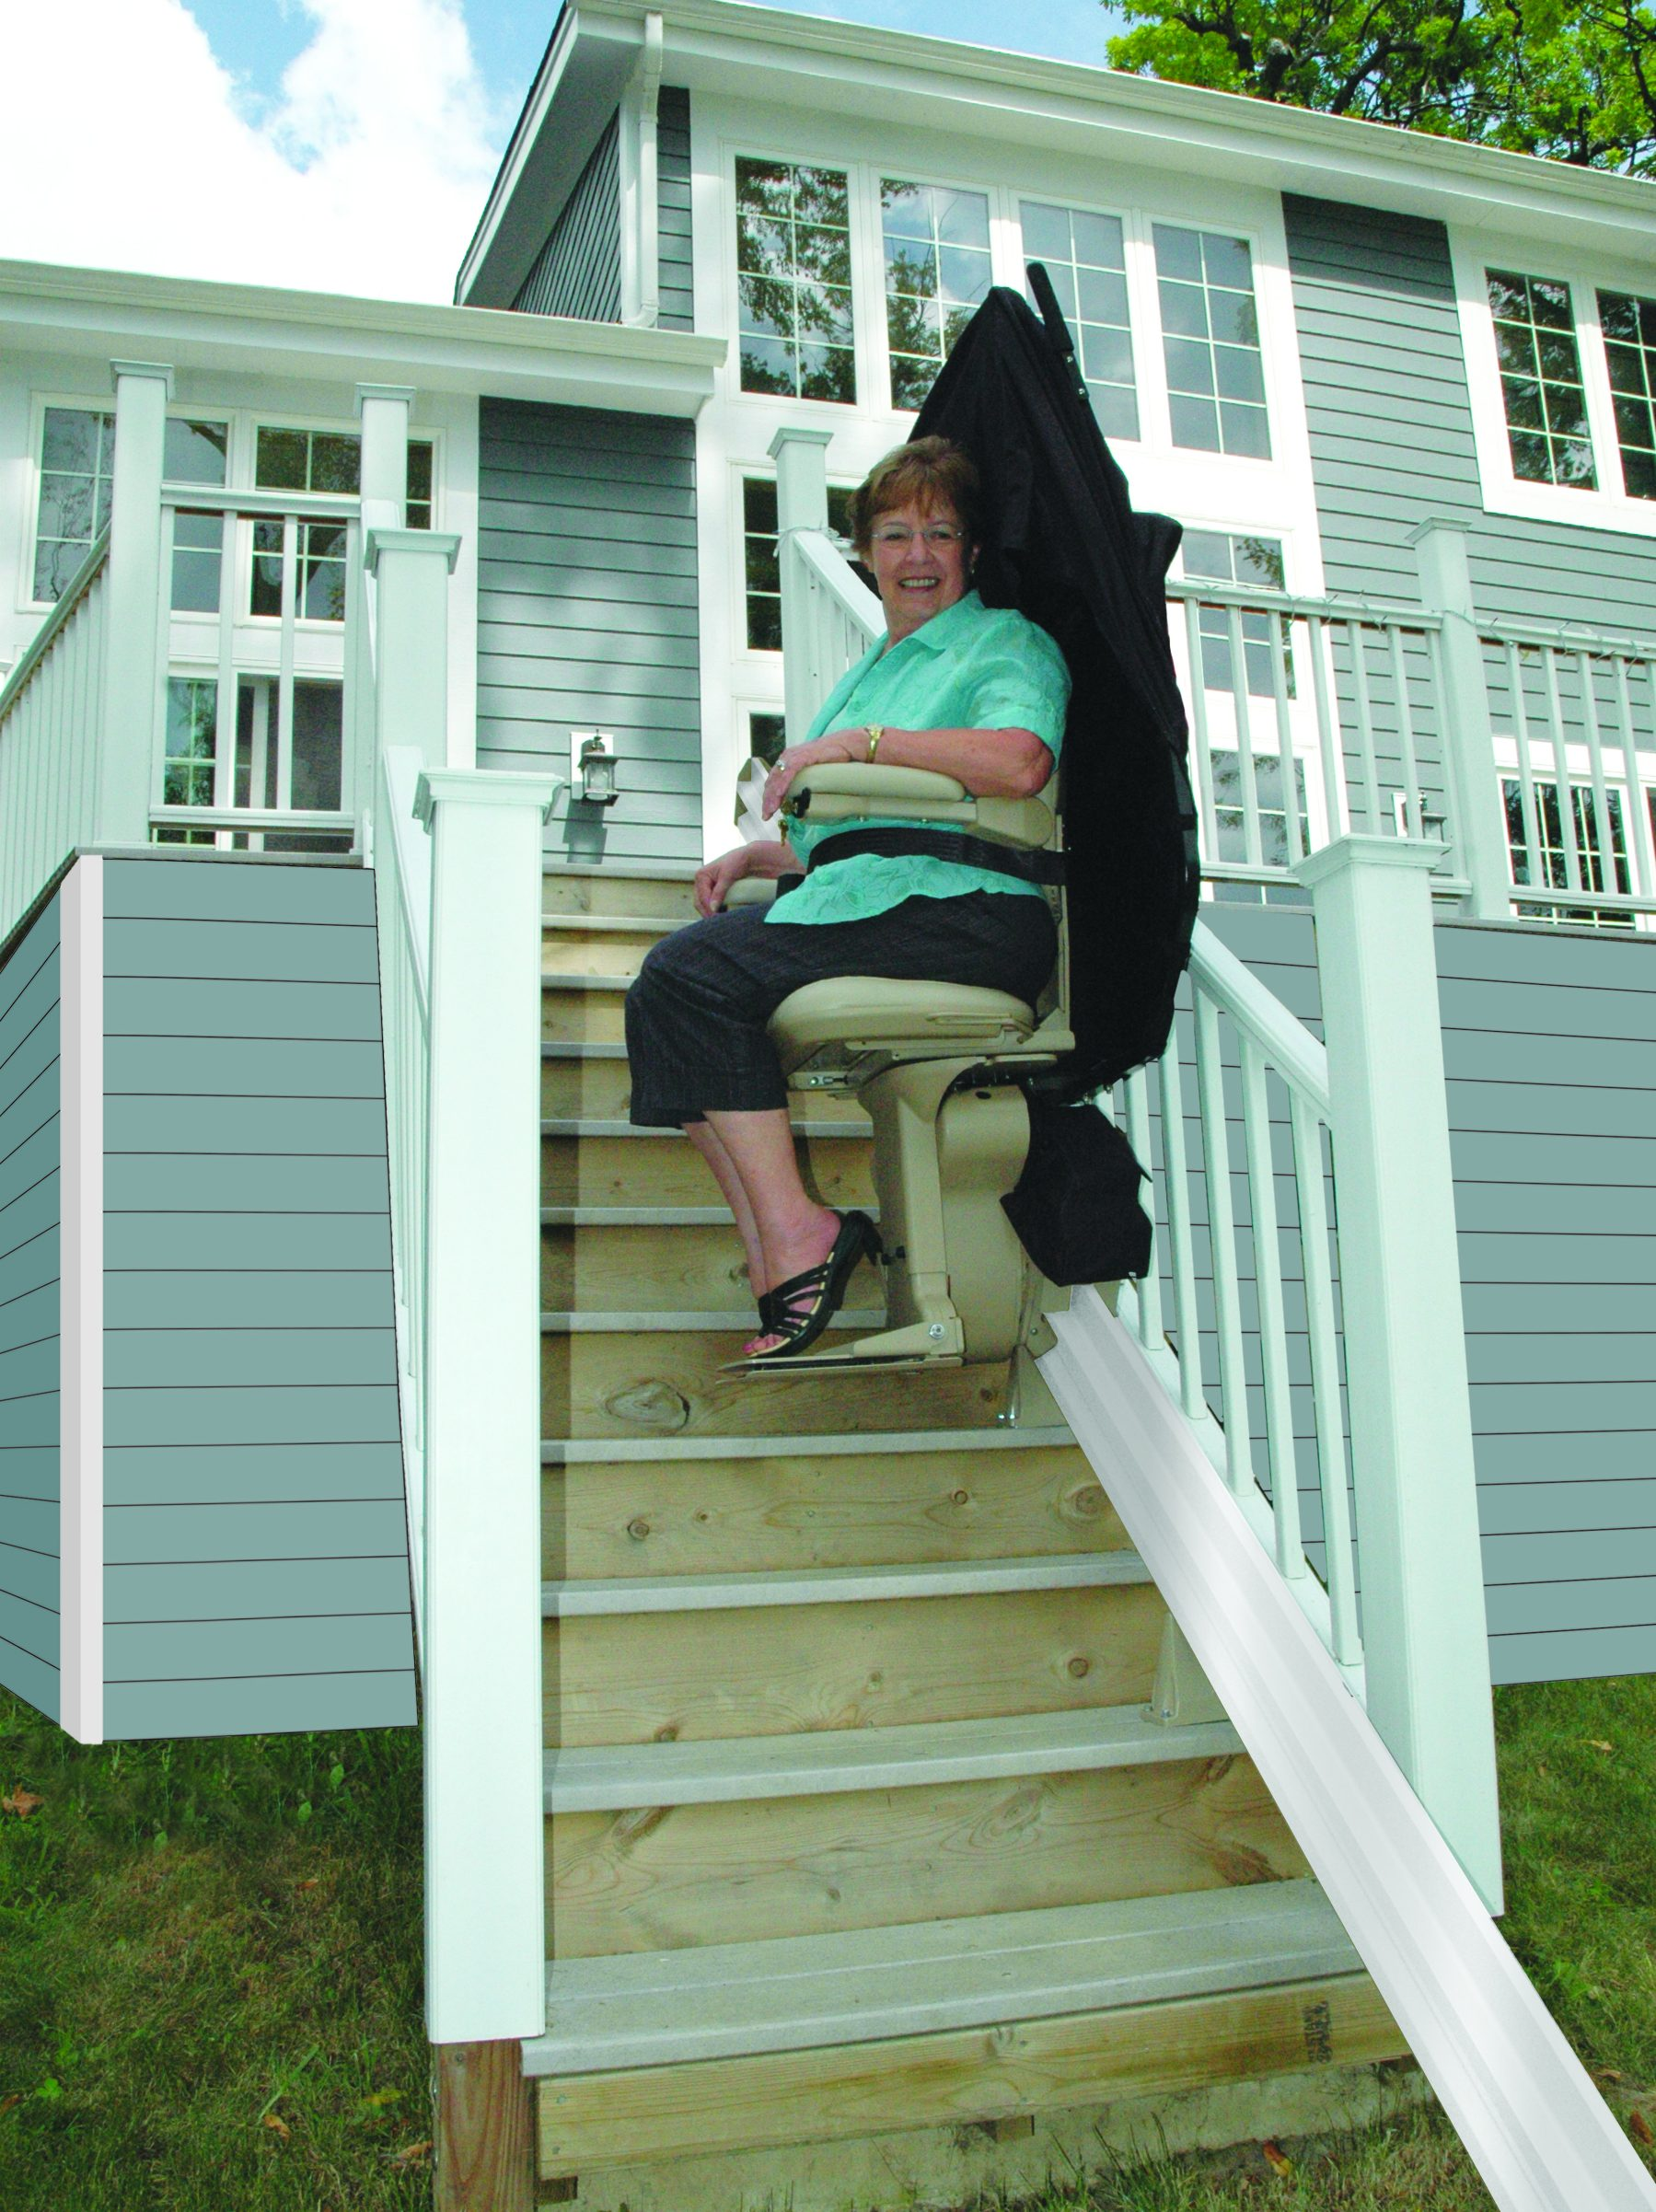 Stairlifts, Platform Lifts, Home Modifications - Paramount Living Aids